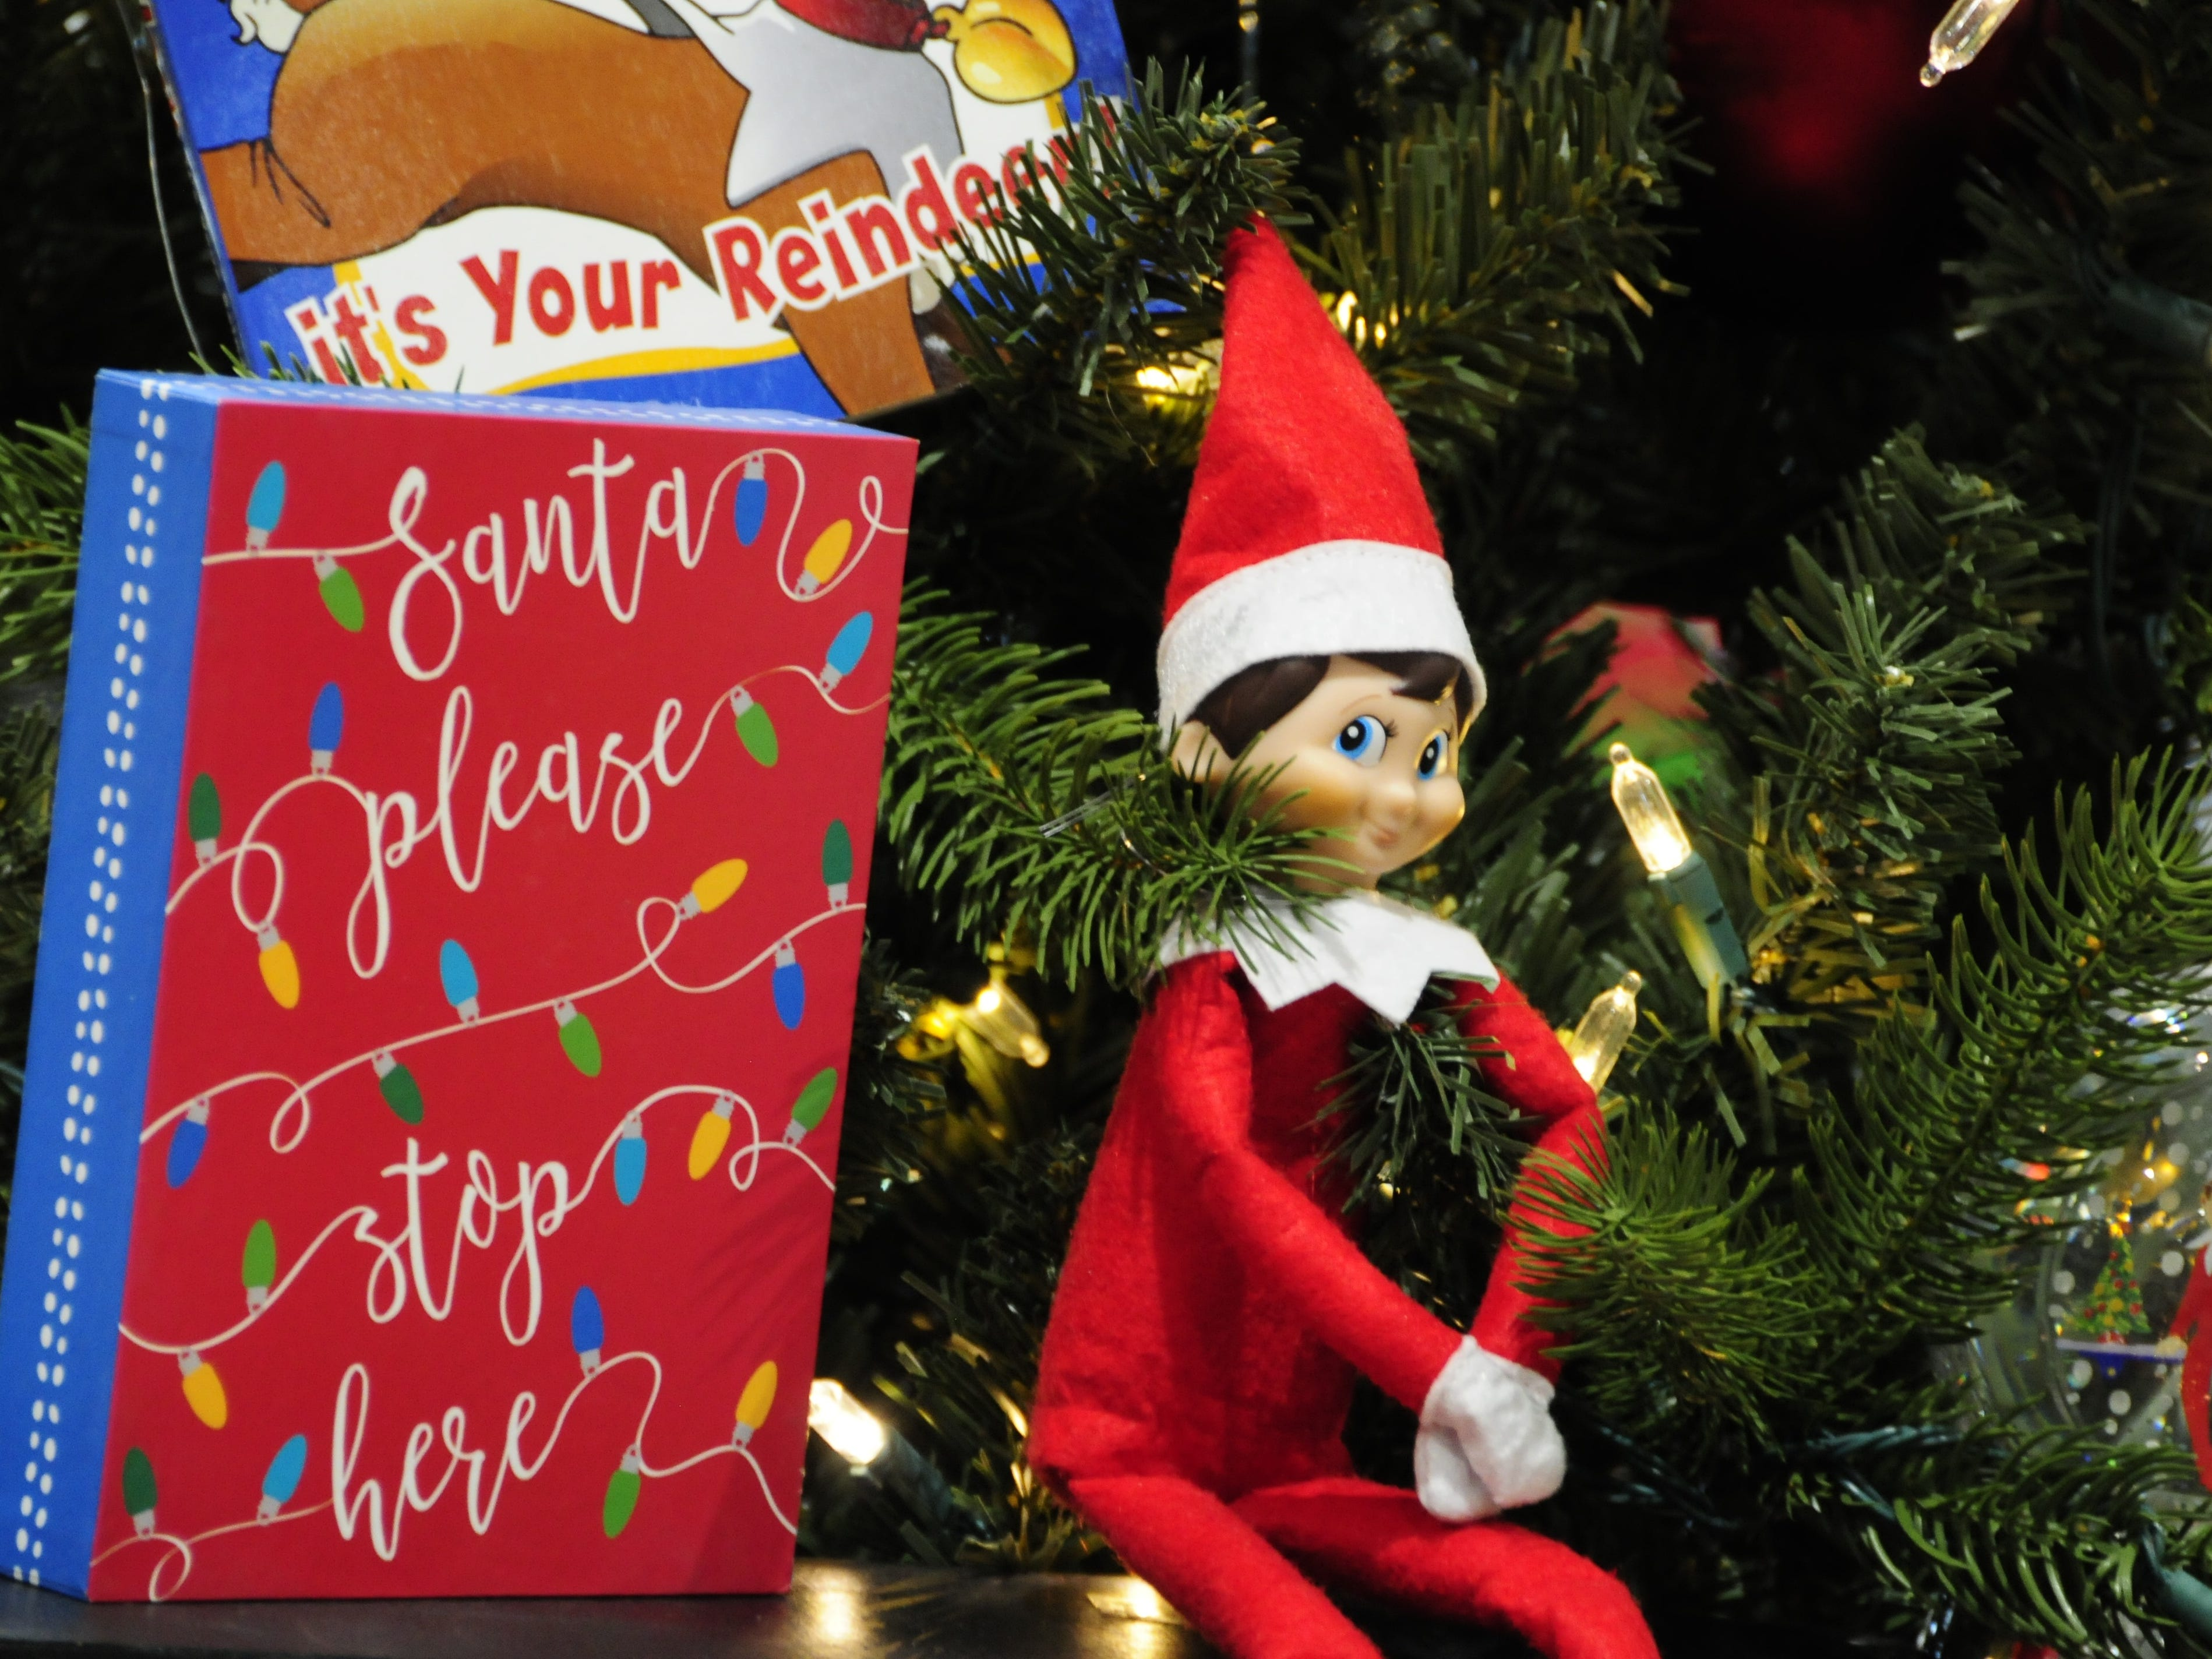 The Elf on the Shelf sits patiently Wednesday during preparations for the Festival of Trees, Friday through Sunday at the Blue Water Convention Center.